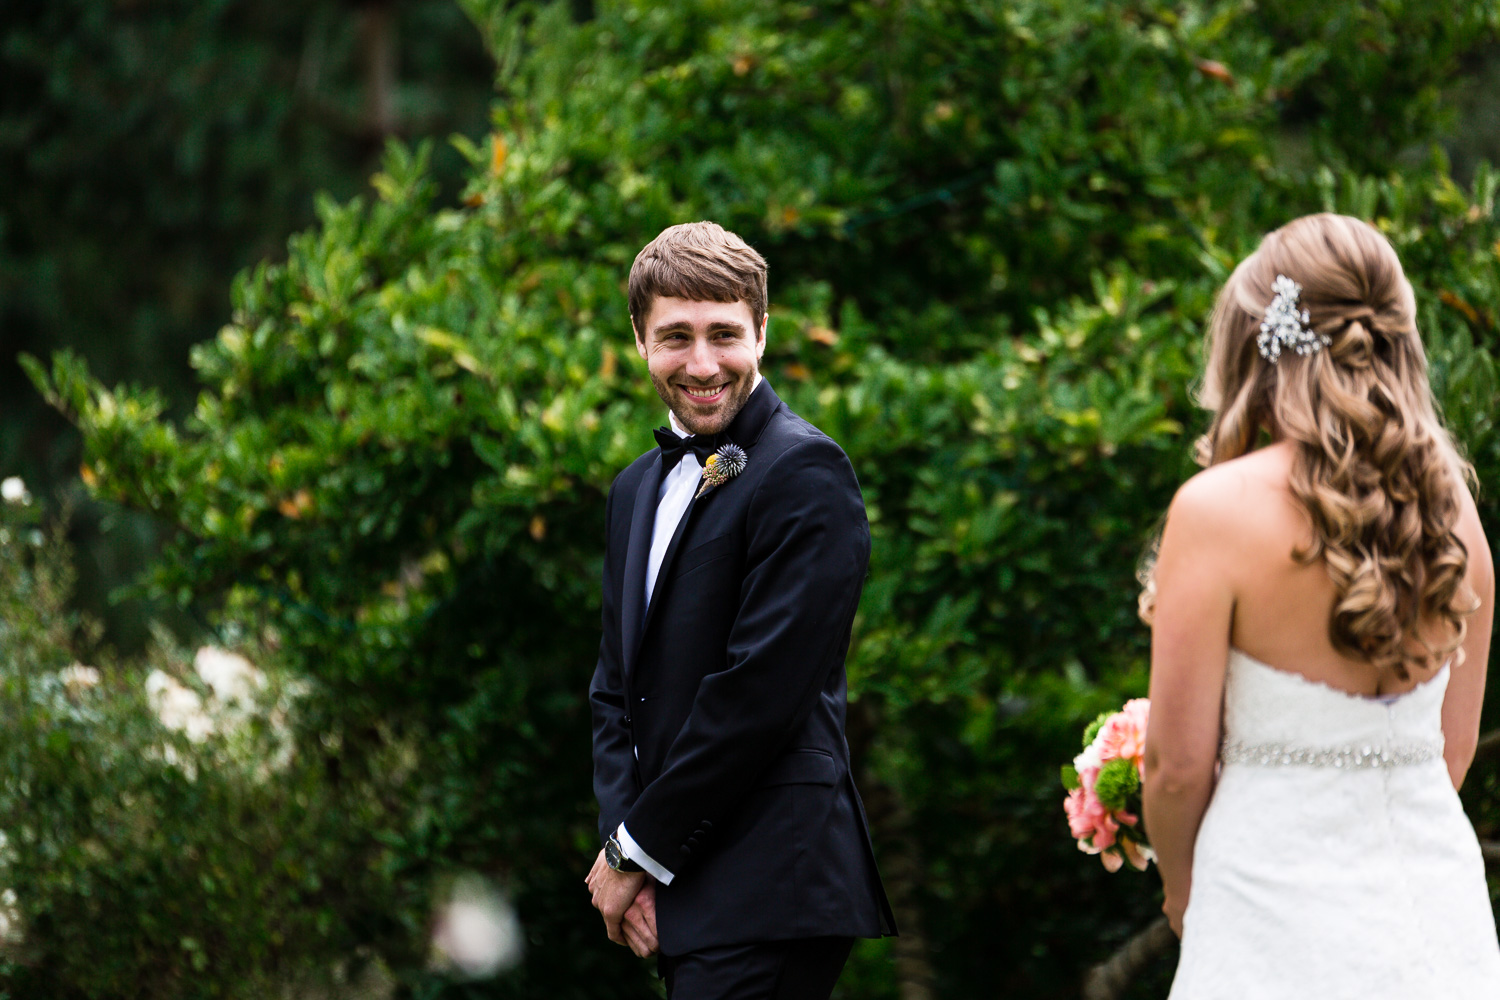 Groom See Bride For The First Time